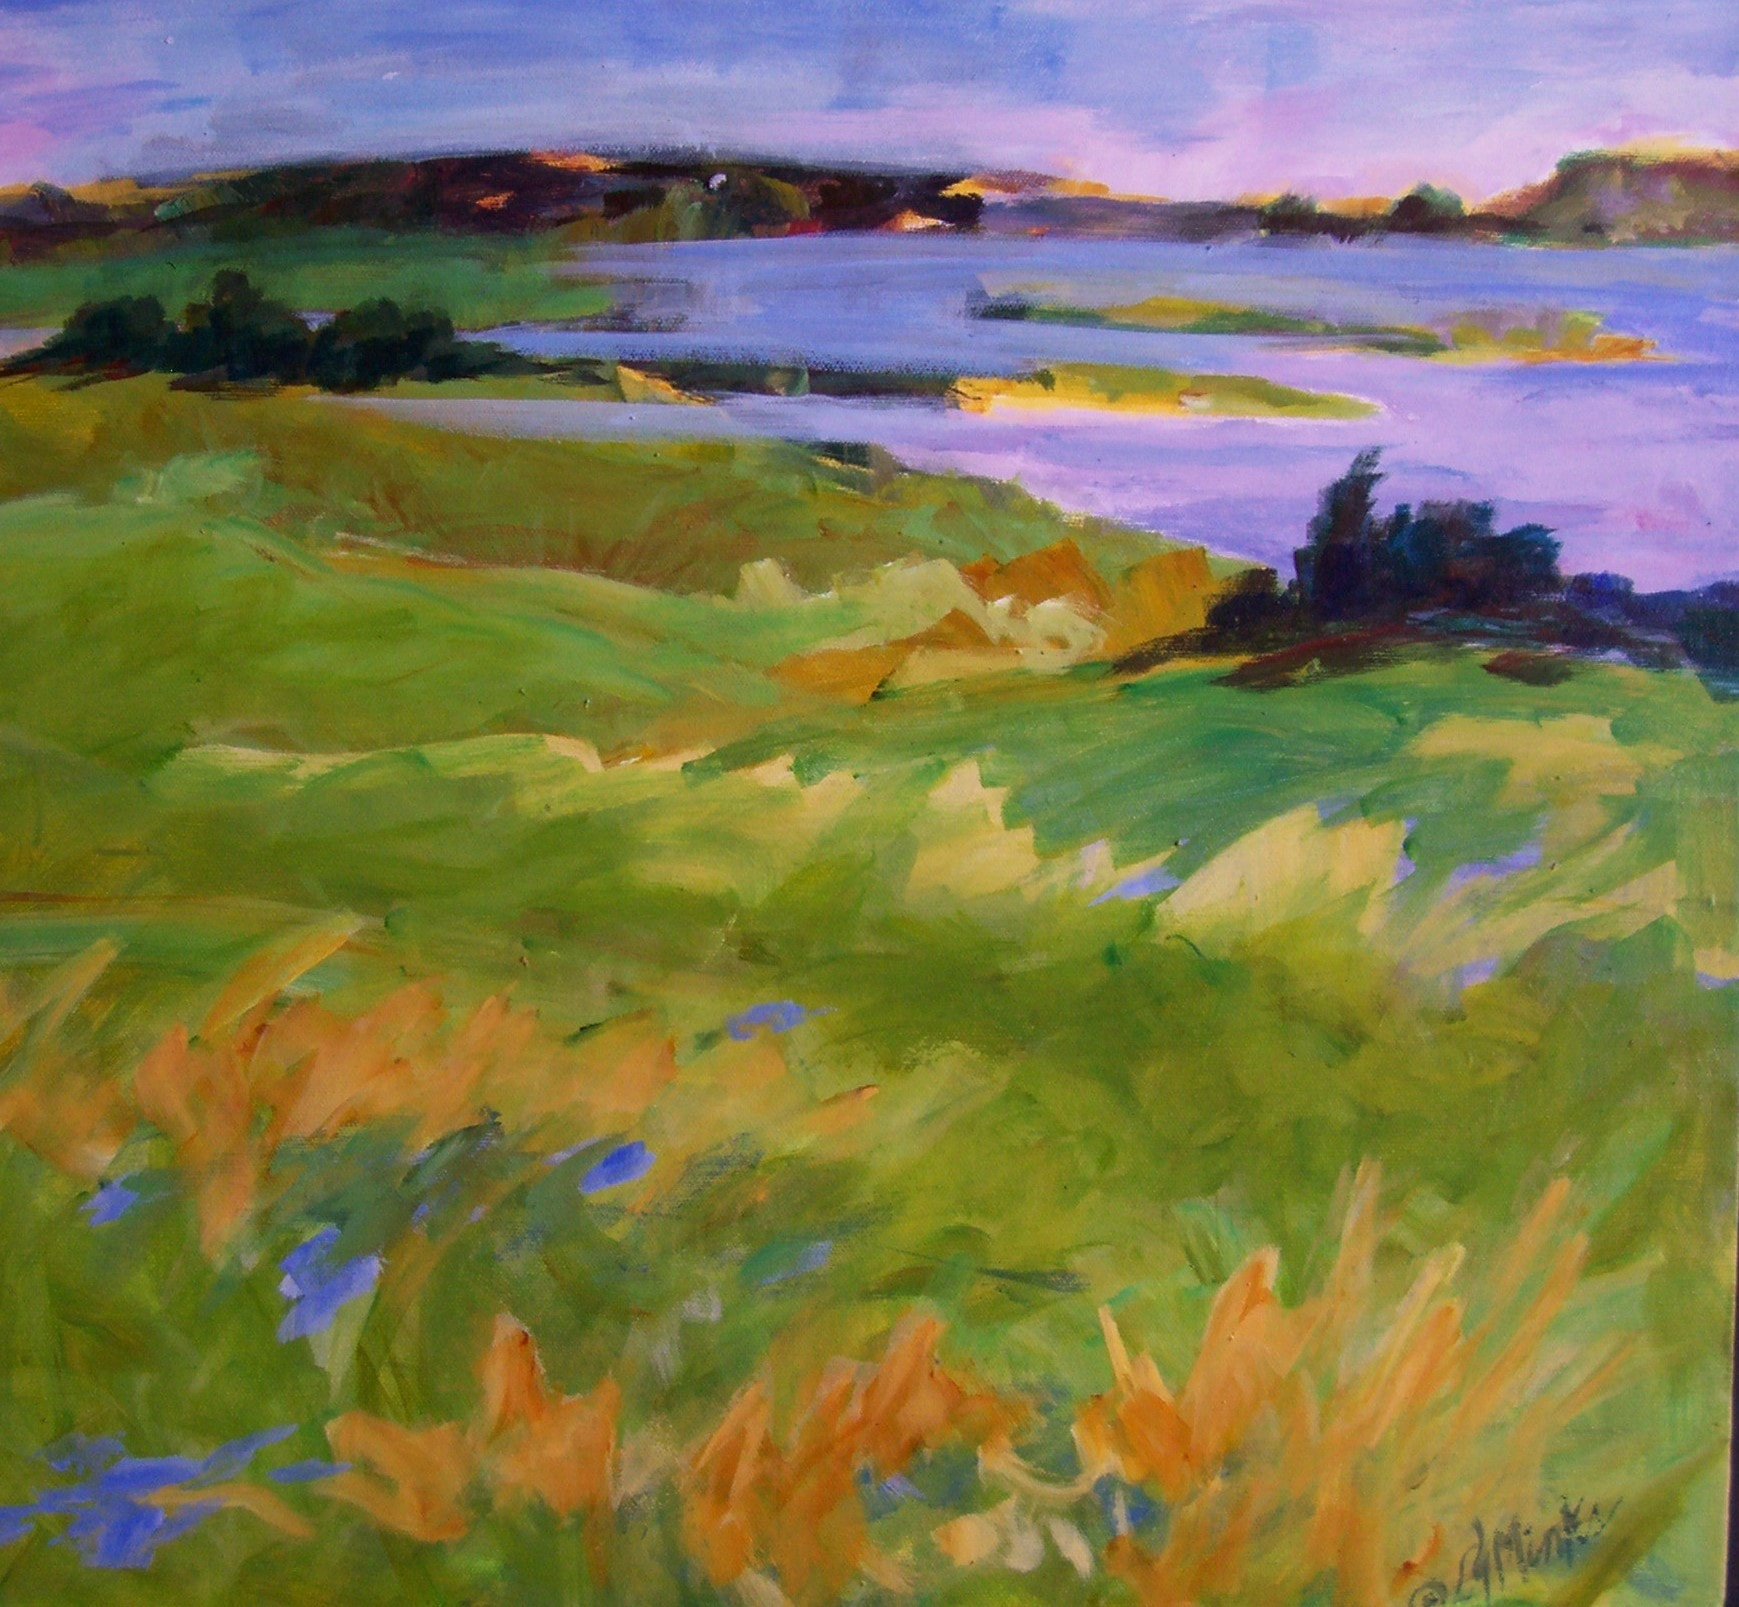 A painting of grass blown in the wind and a large river